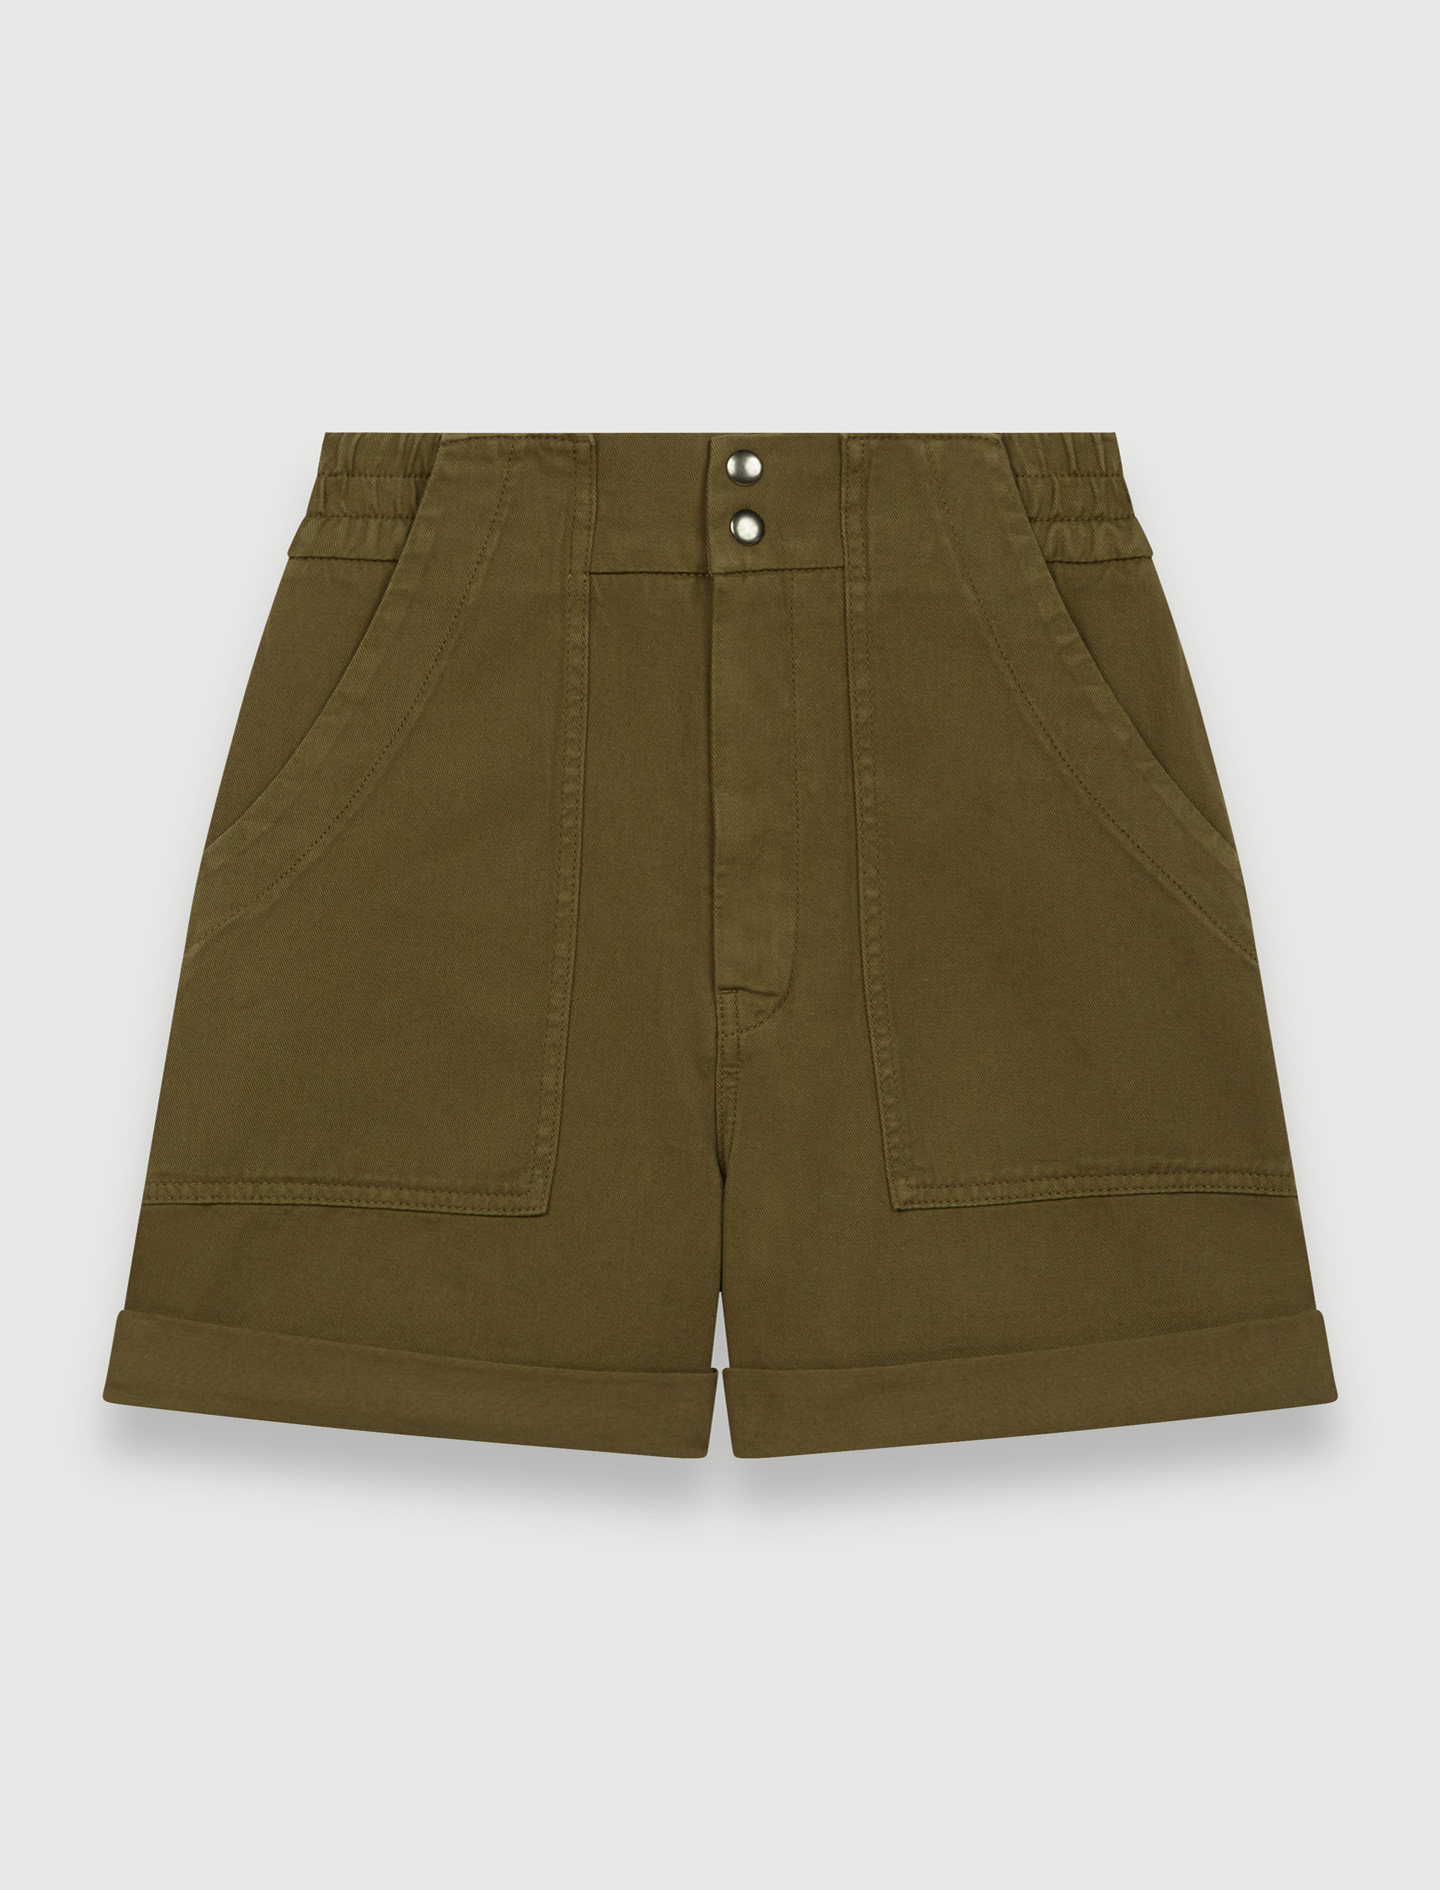 Khaki cotton canvas shorts - Green